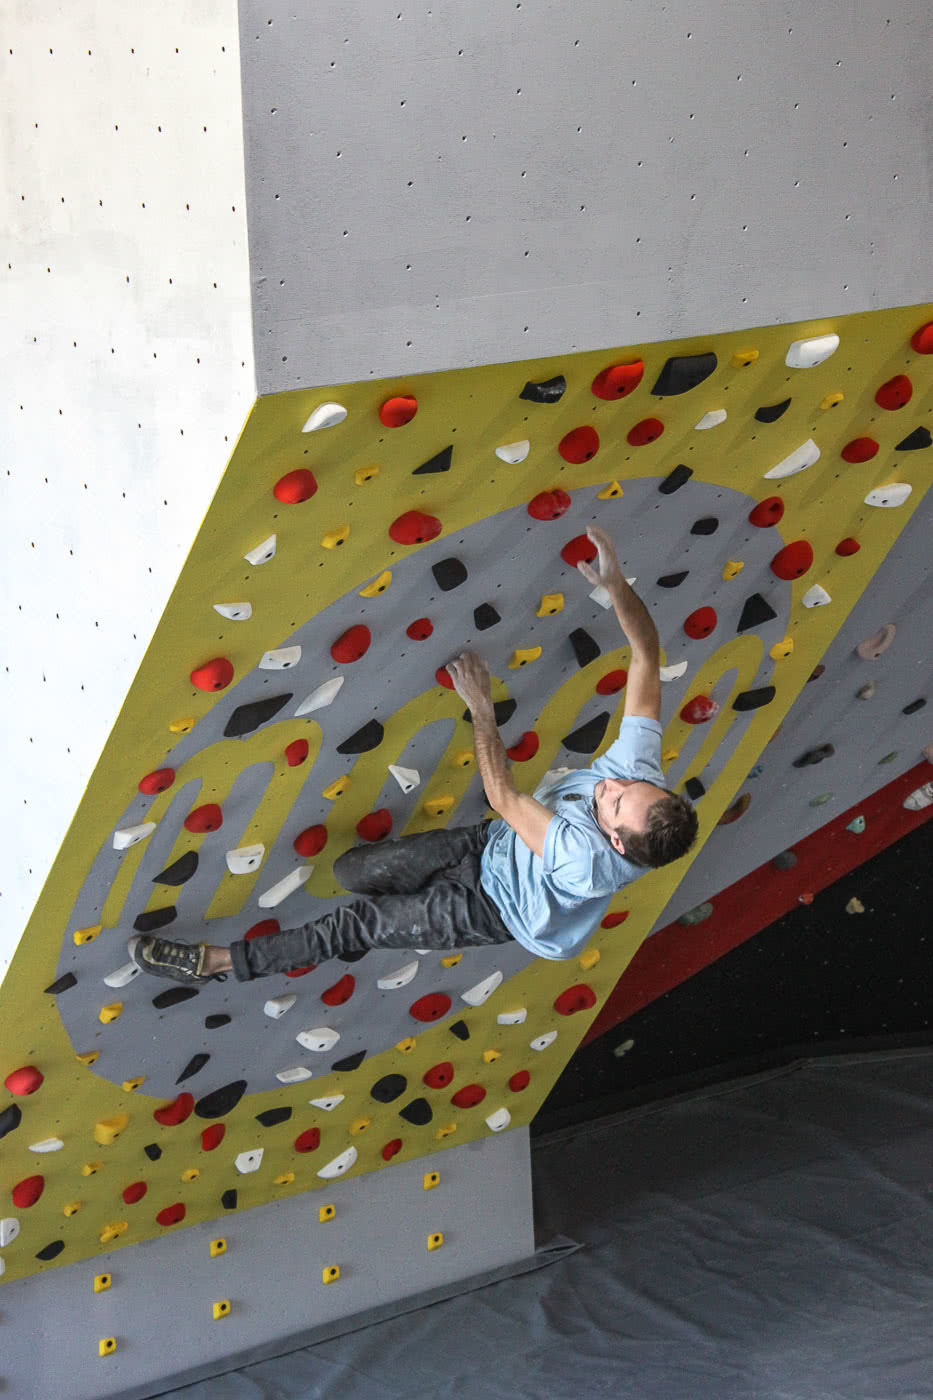 There's A Brand New Bouldering Gym In Lake Macquarie, Pulse Climbing Warners Bay_Scott Forrester-3, moonboard, bouldering